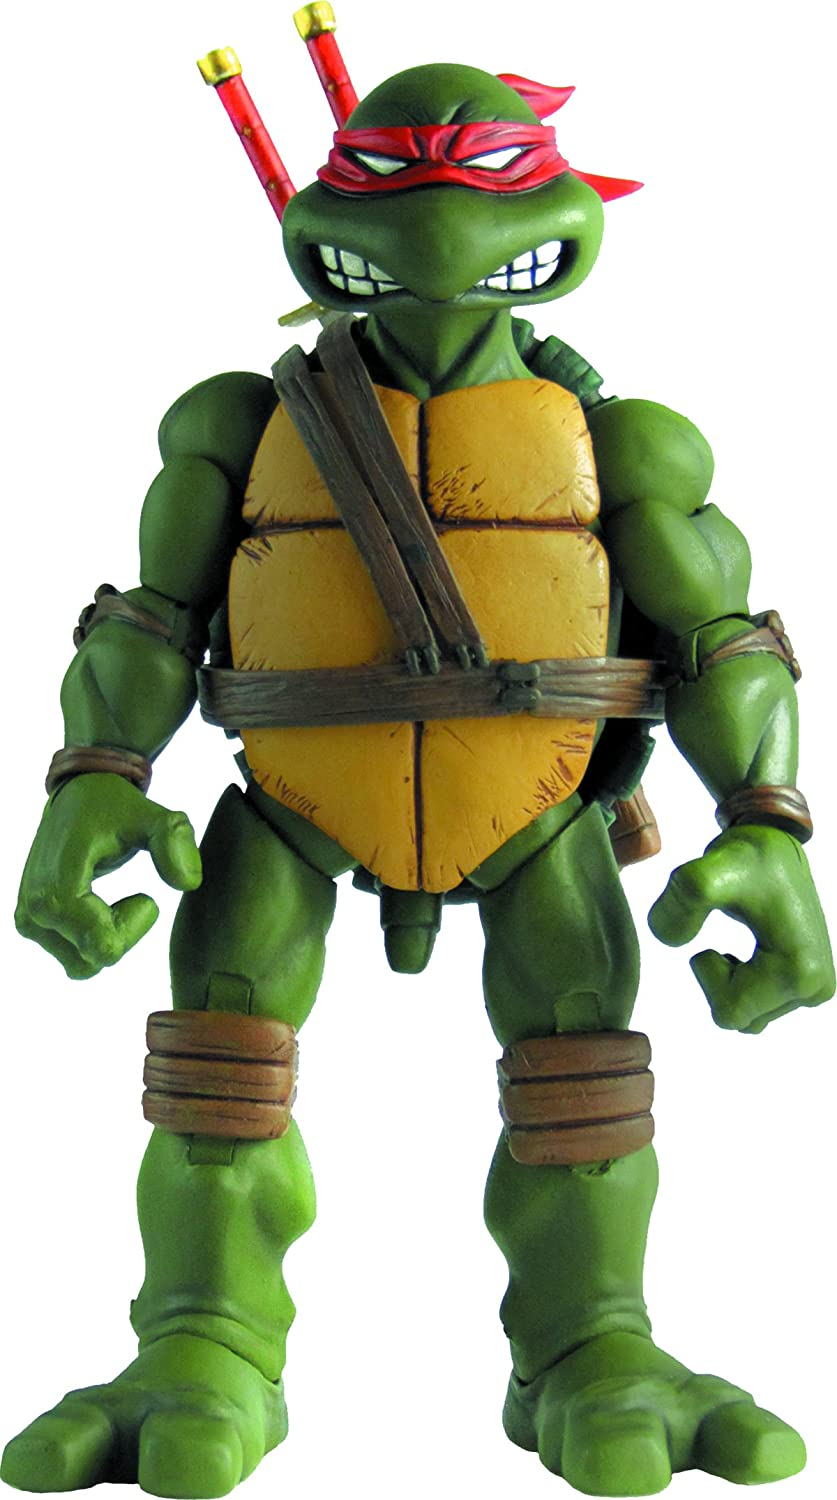 Mondo Tees Teenage Mutant Ninja Turtles: Leonardo Collectible Figure (1:6 Scale)